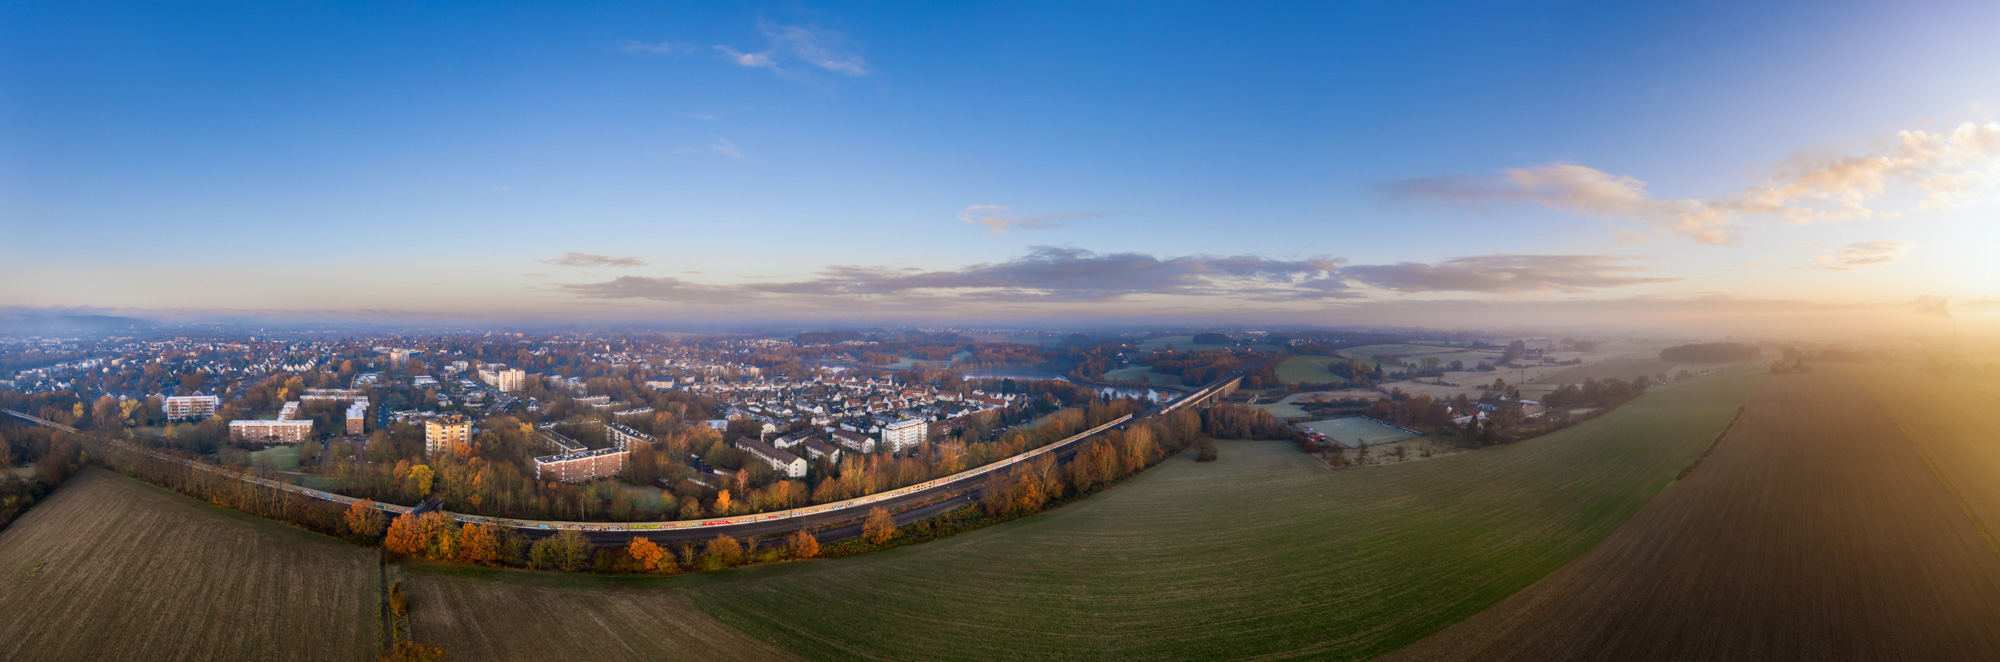 District 'Schildesche' from the air in November 2019.